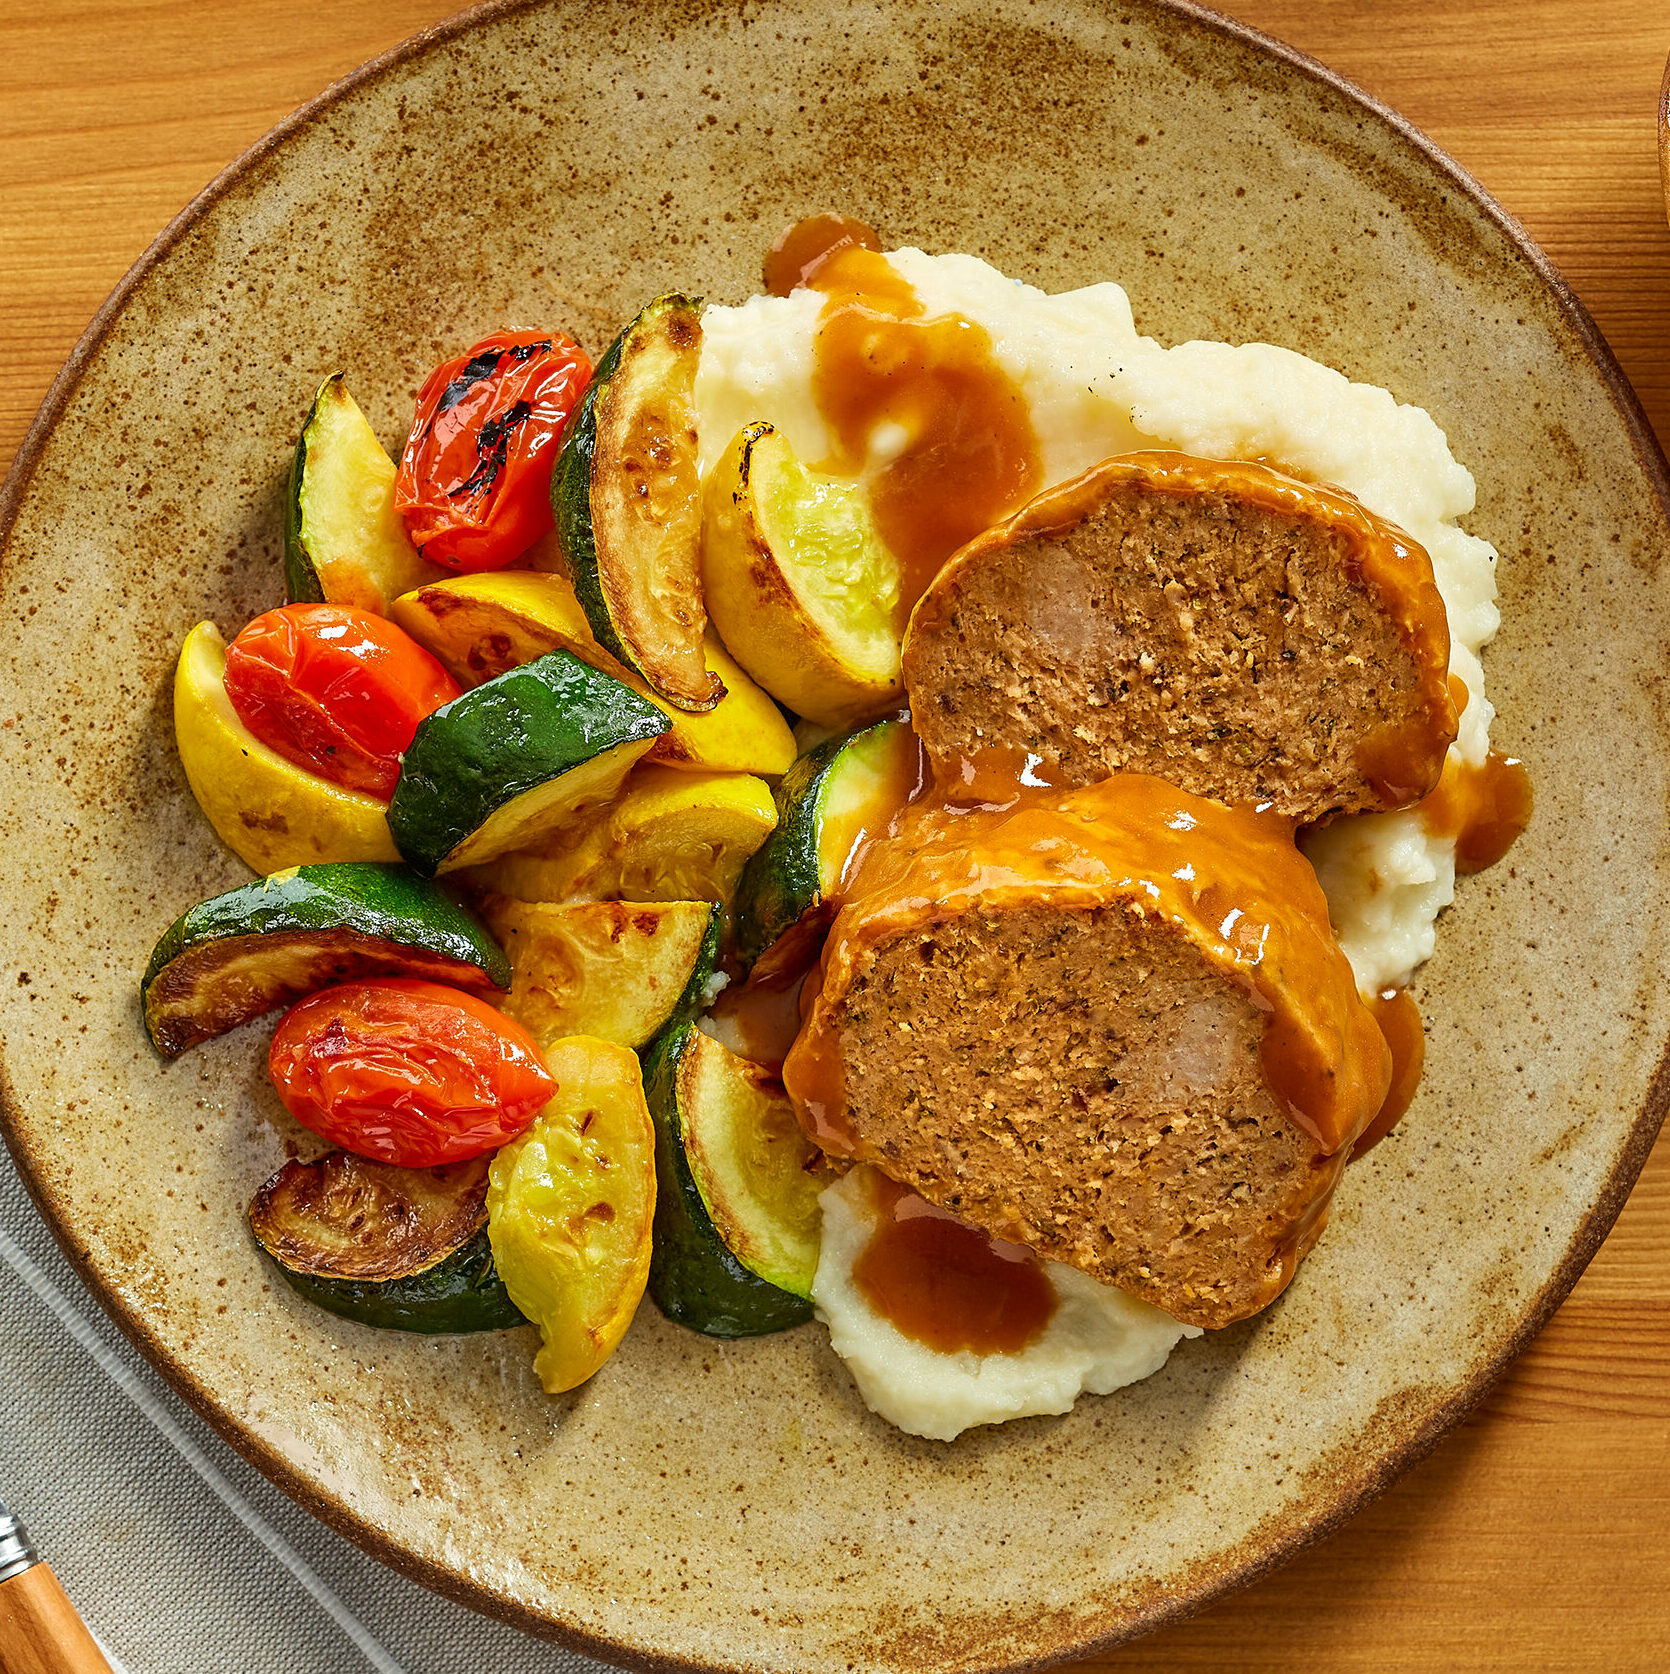 Sunday Meatloaf with Mashed Potatoes, Gravy and Sautéed Vegetables for Four